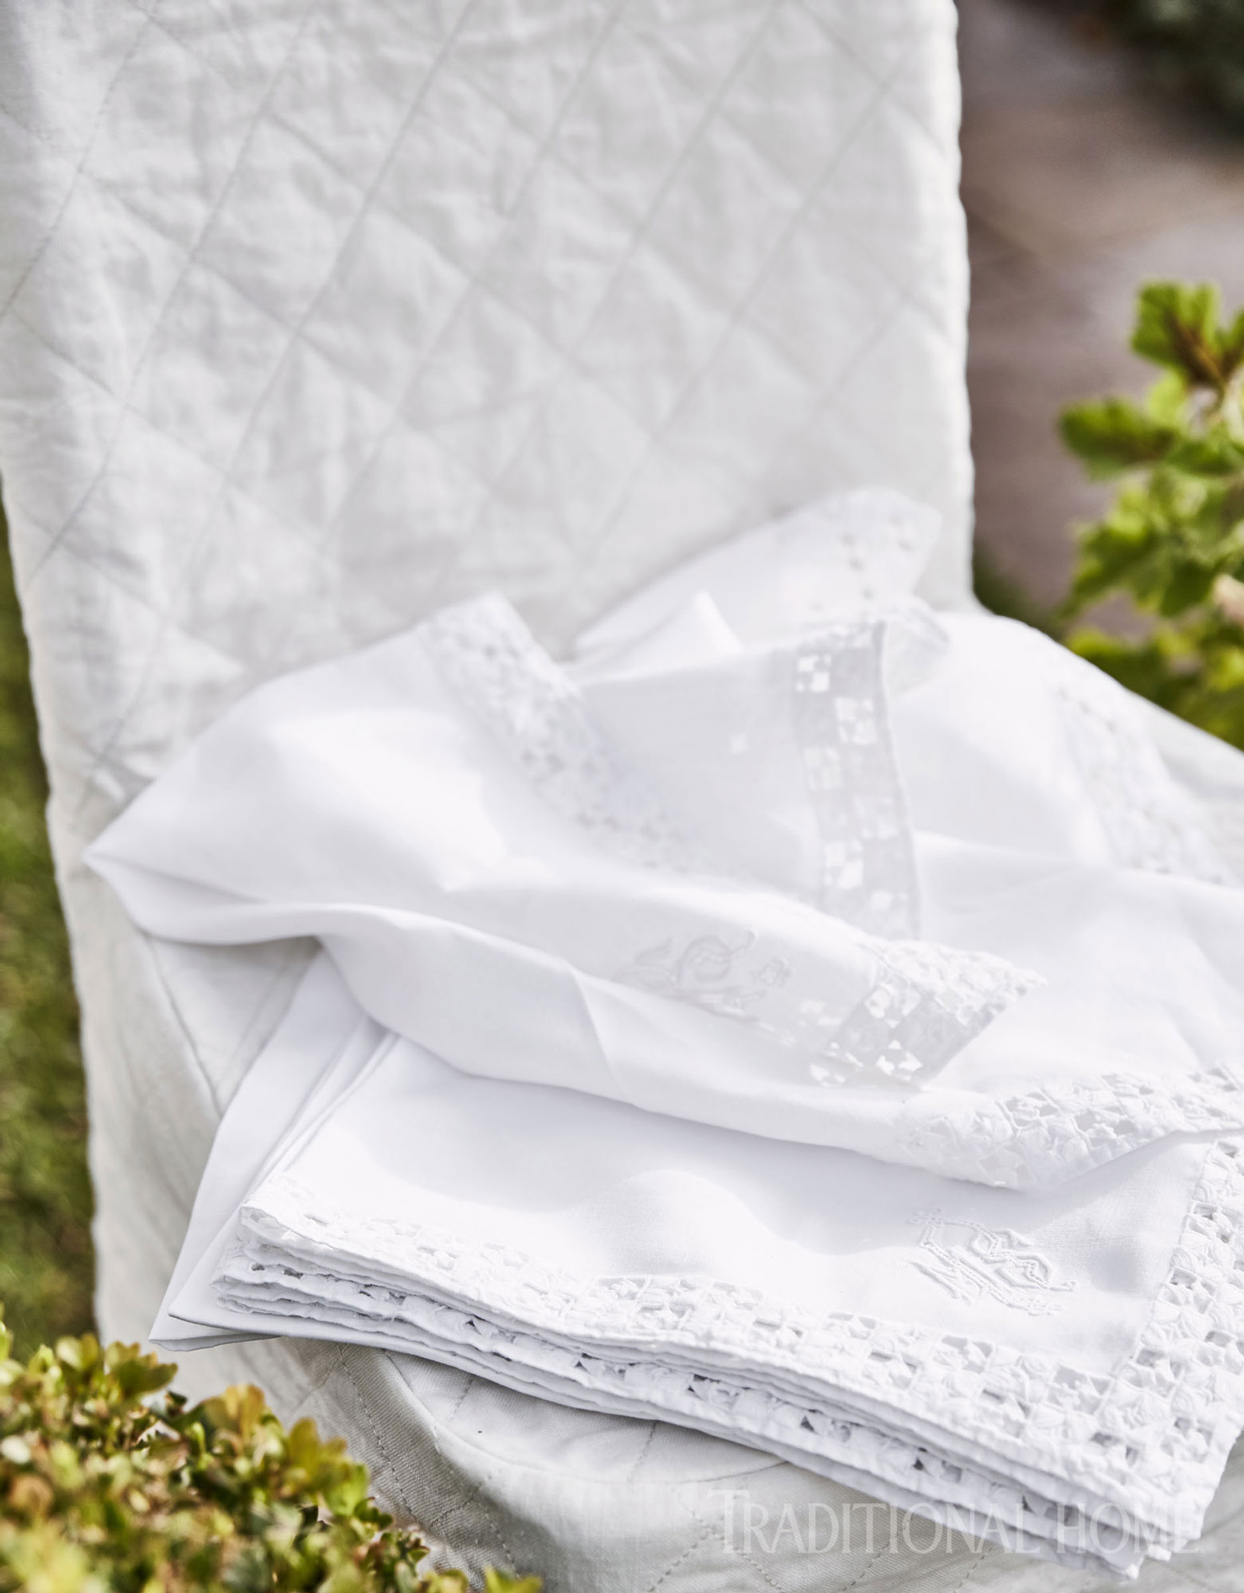 Vintage linens are numerous in Suzanne's inventory of entertaining wares; quilted slipcovers were fabricated using old linen army sheets from the Marché aux Puces de Saint-Ouen, Paris' renowned flea market.